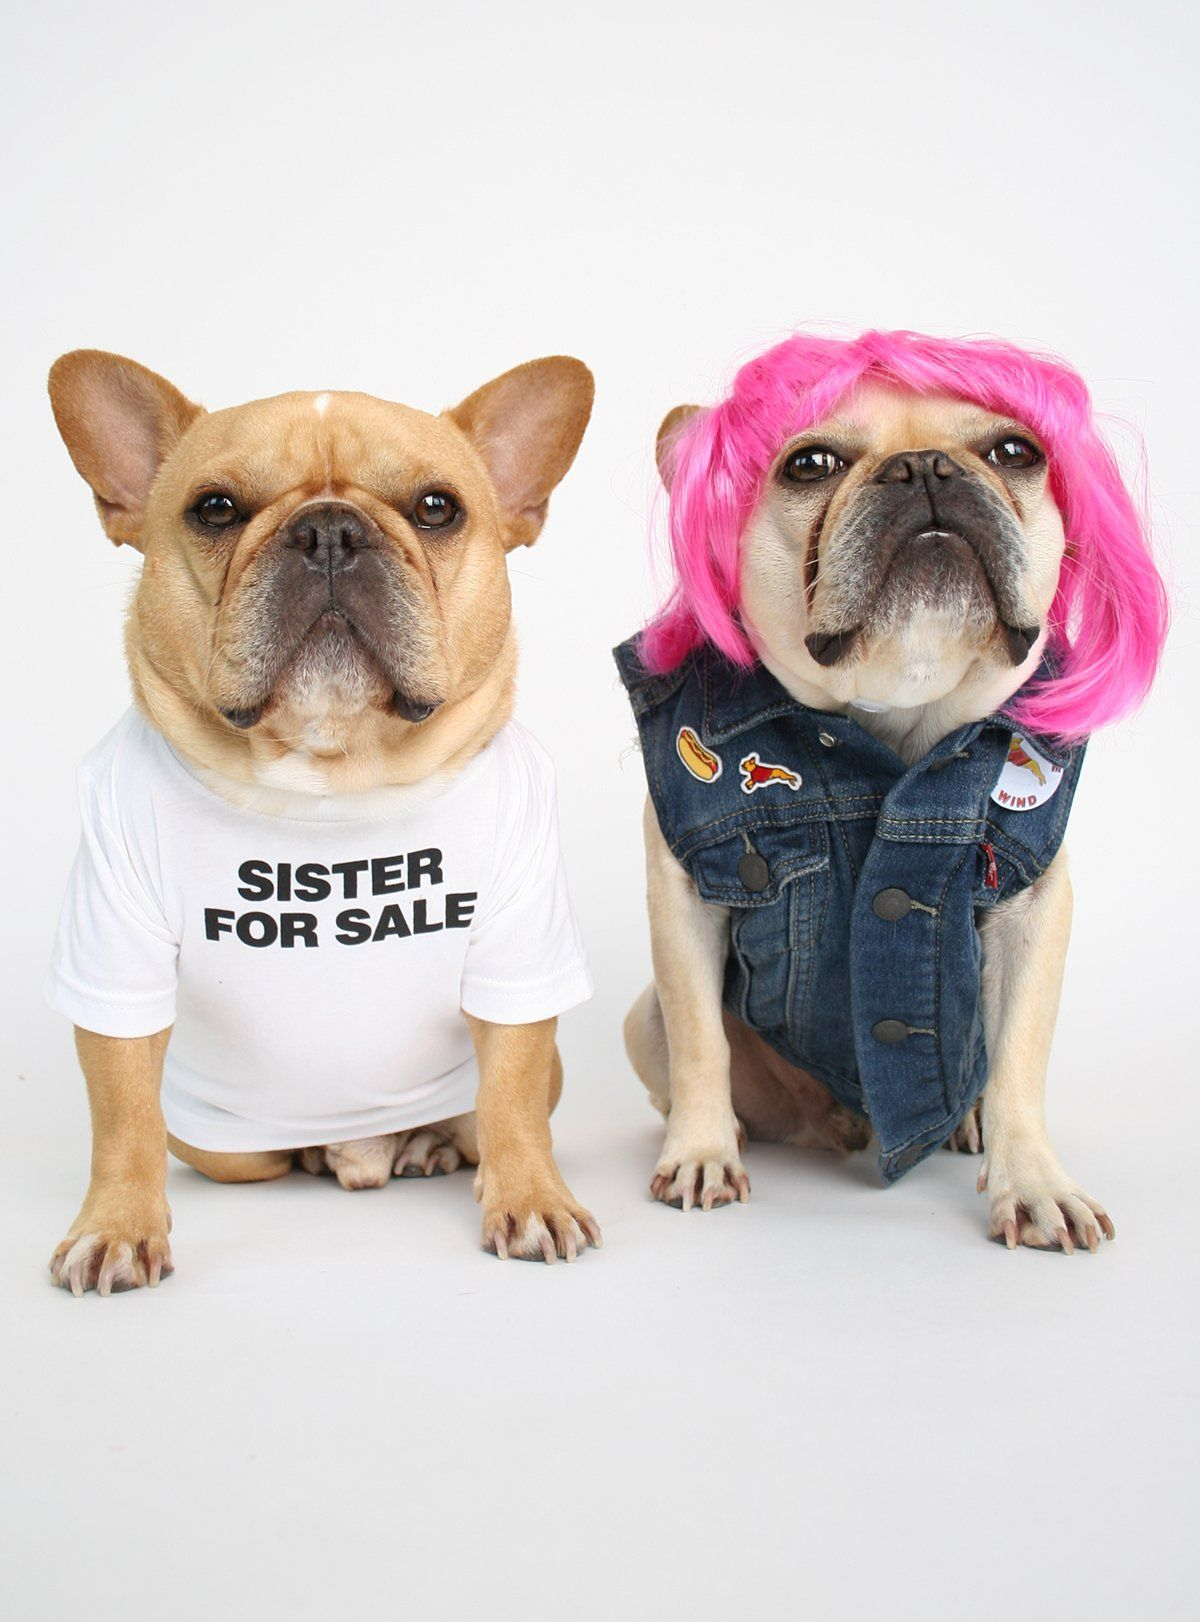 Sister For Sale Dog Tee Custom Dog Shirts Dogs Dogs Tee